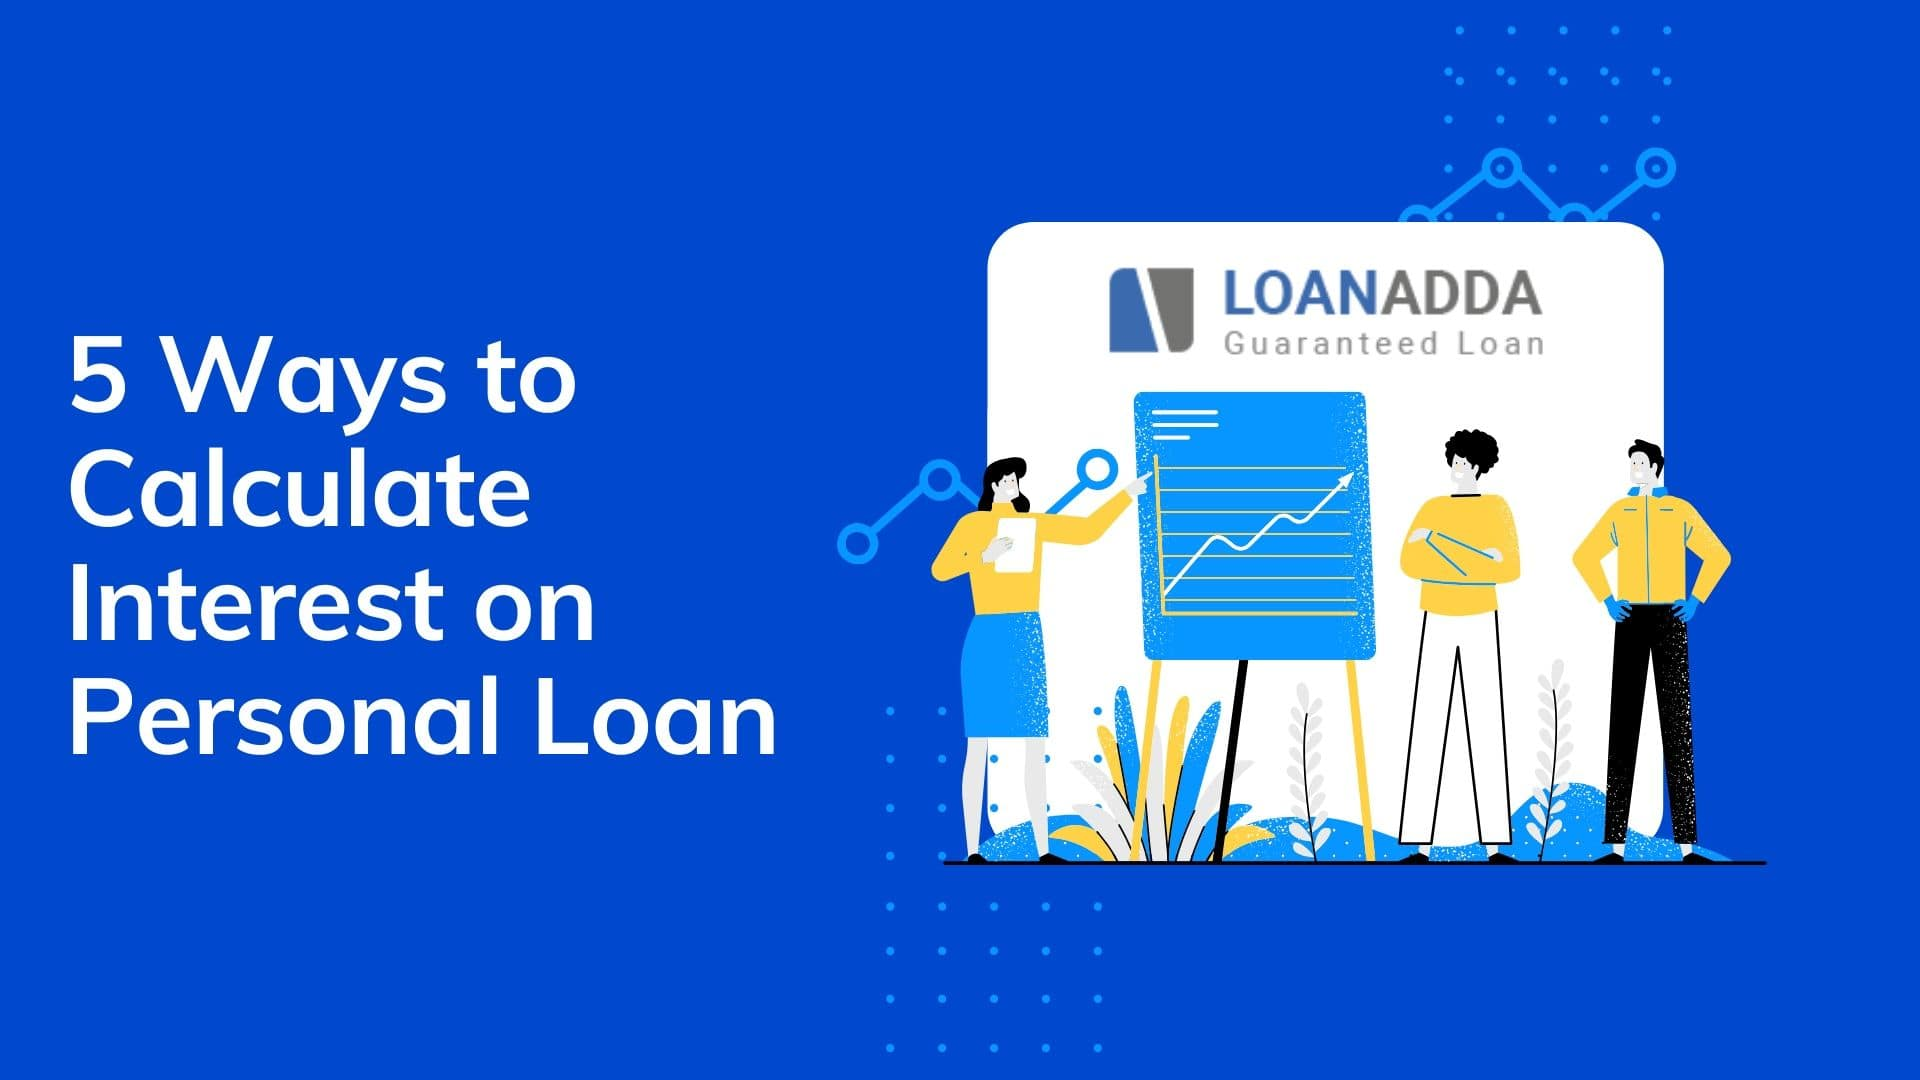 5 Ways to Calculate Interest on Personal Loan